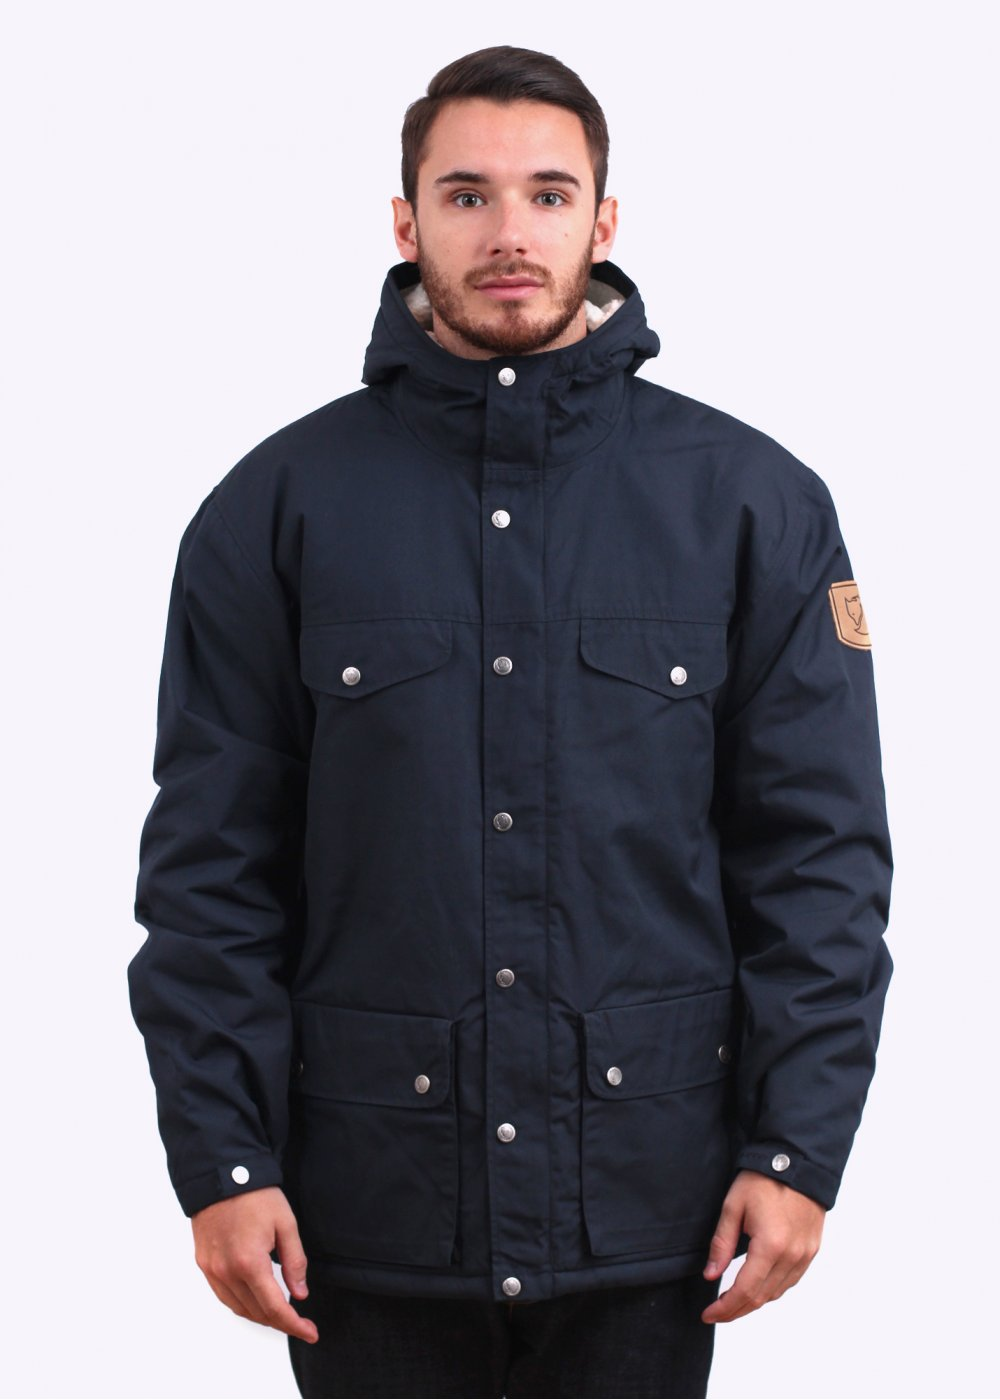 Fjallraven Greenland Winter Jacket in